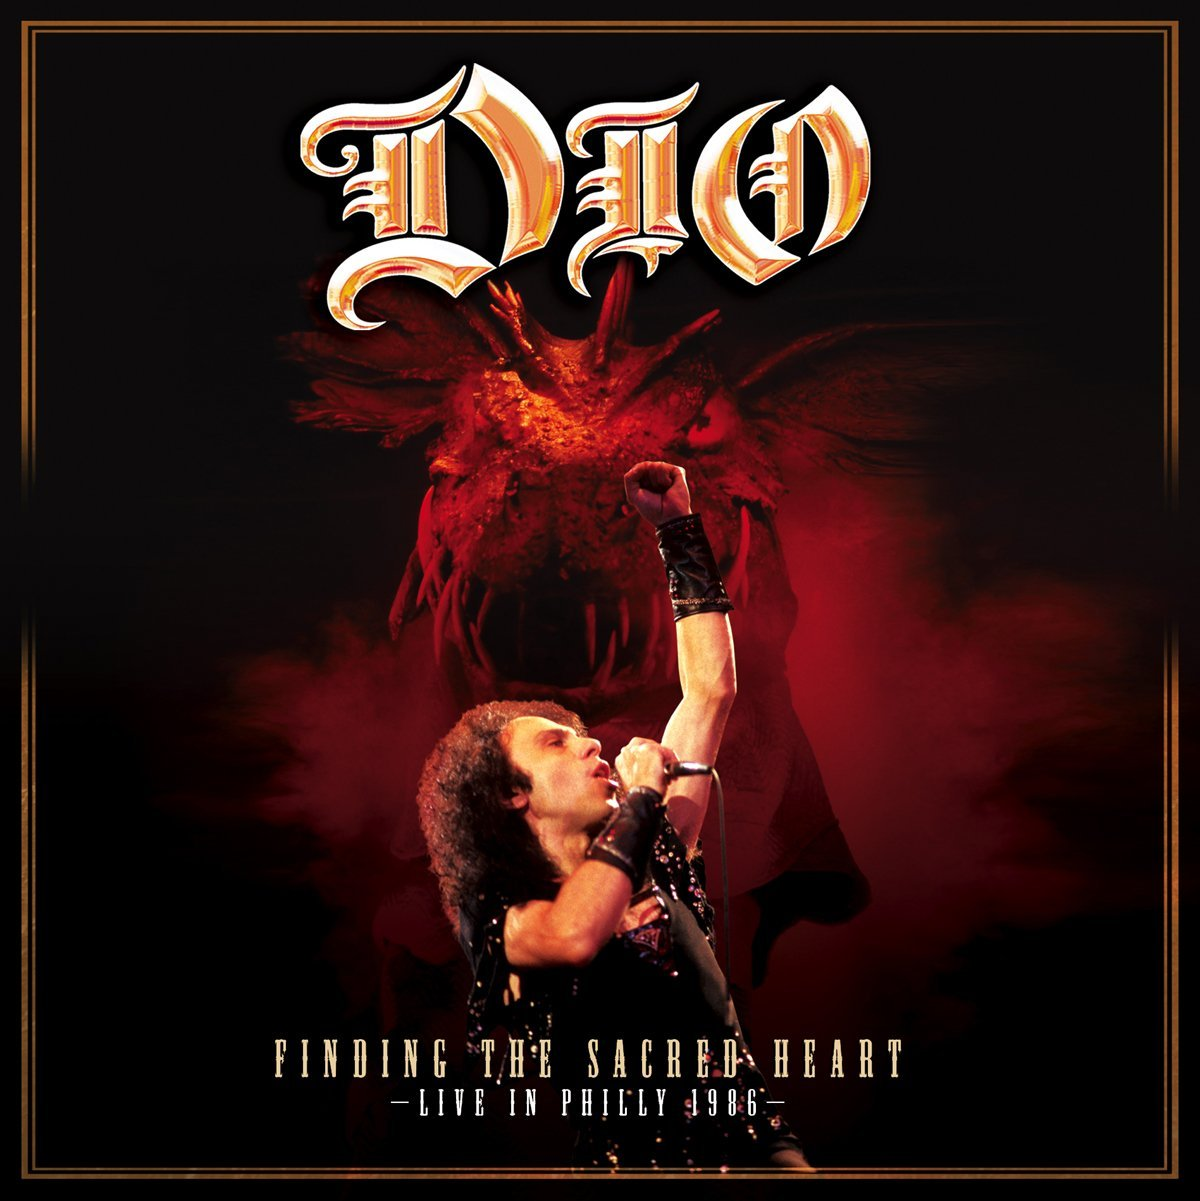 DIO - Finding The Sacred Heart ; Live In Philly 1986 (2013)  mp3, download